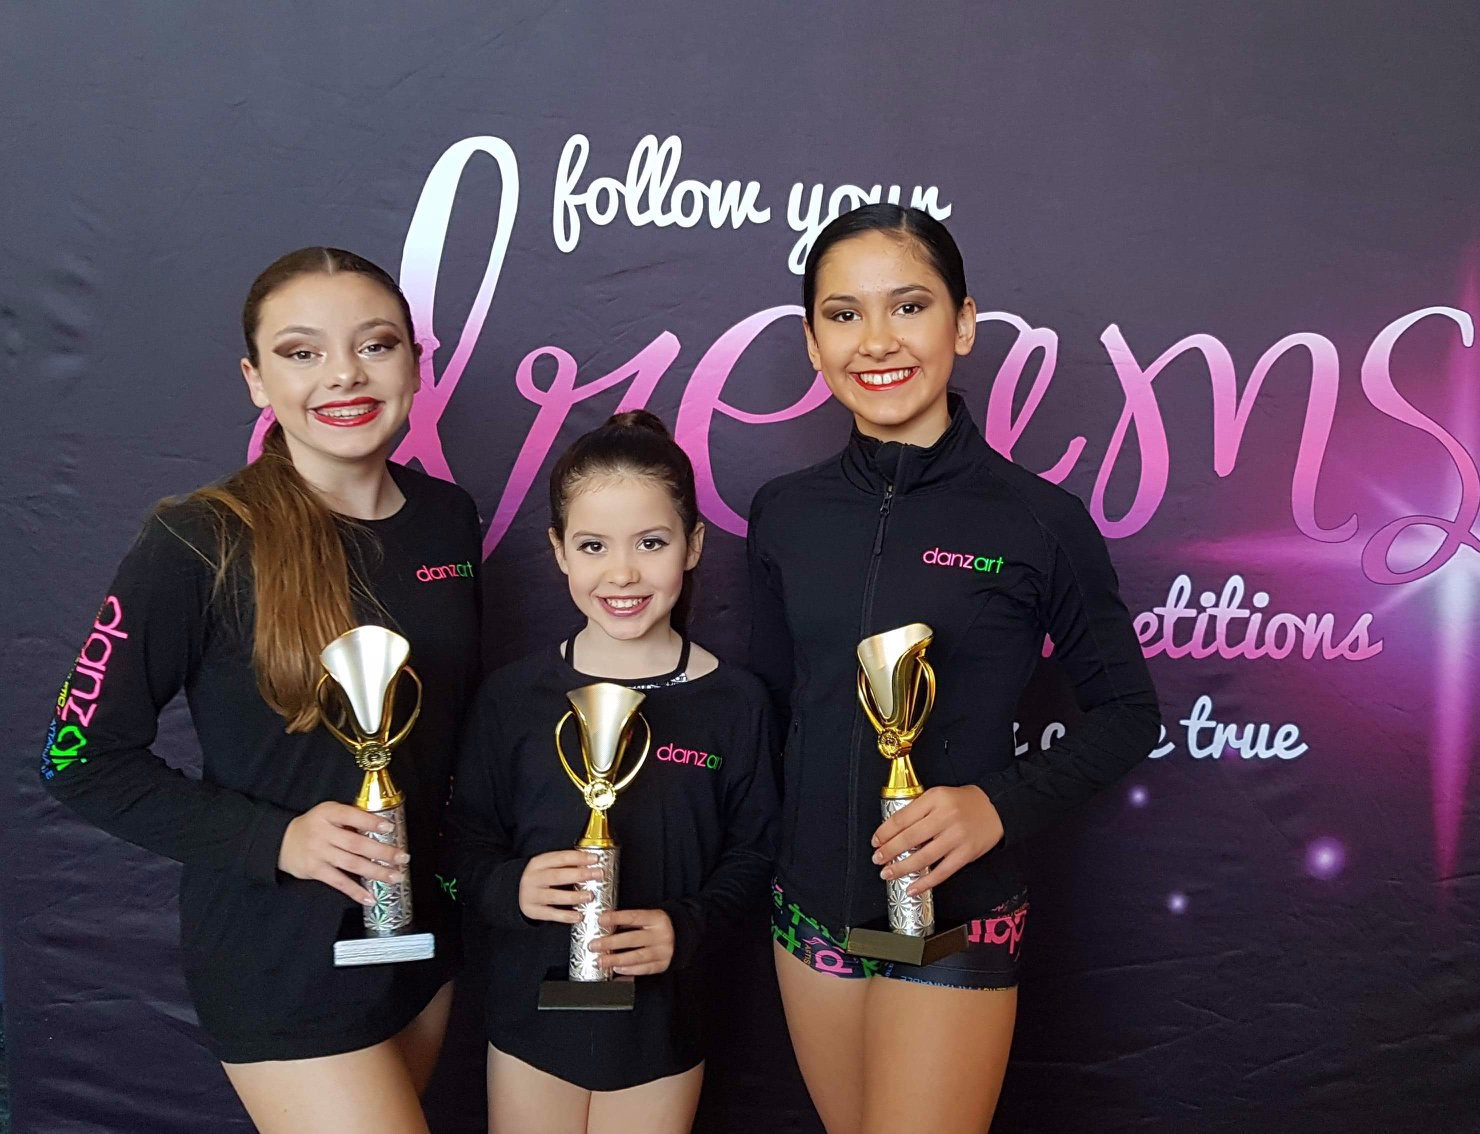 Dance competition winners.